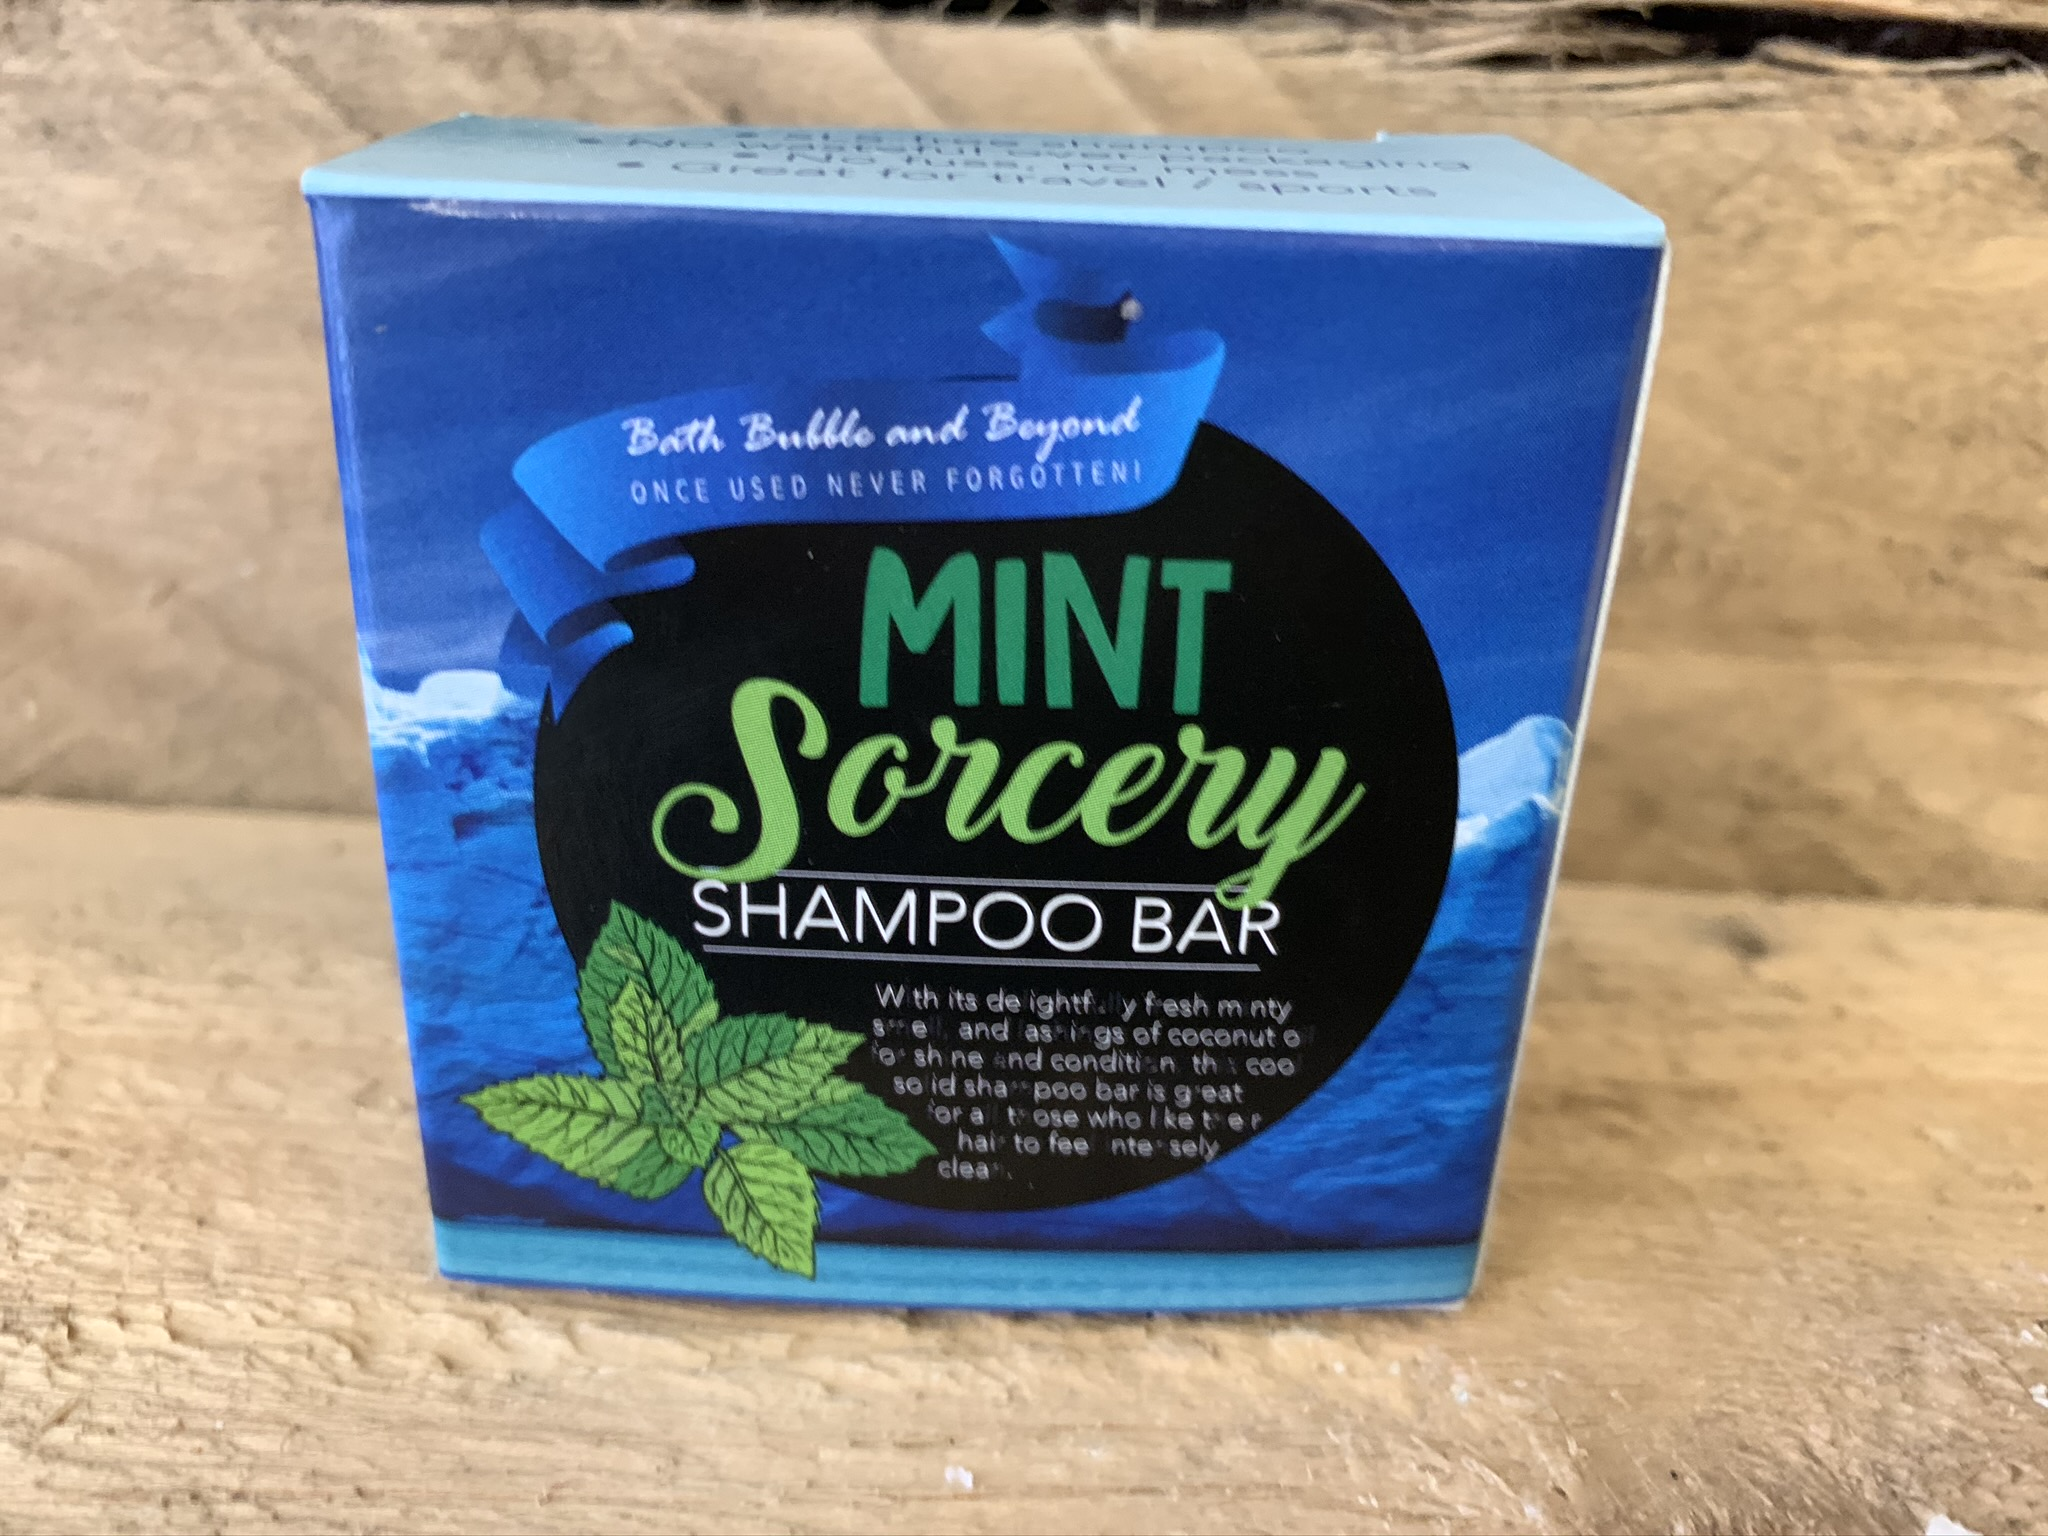 Mint Sorcery Boxed Solid Shampoo Bar